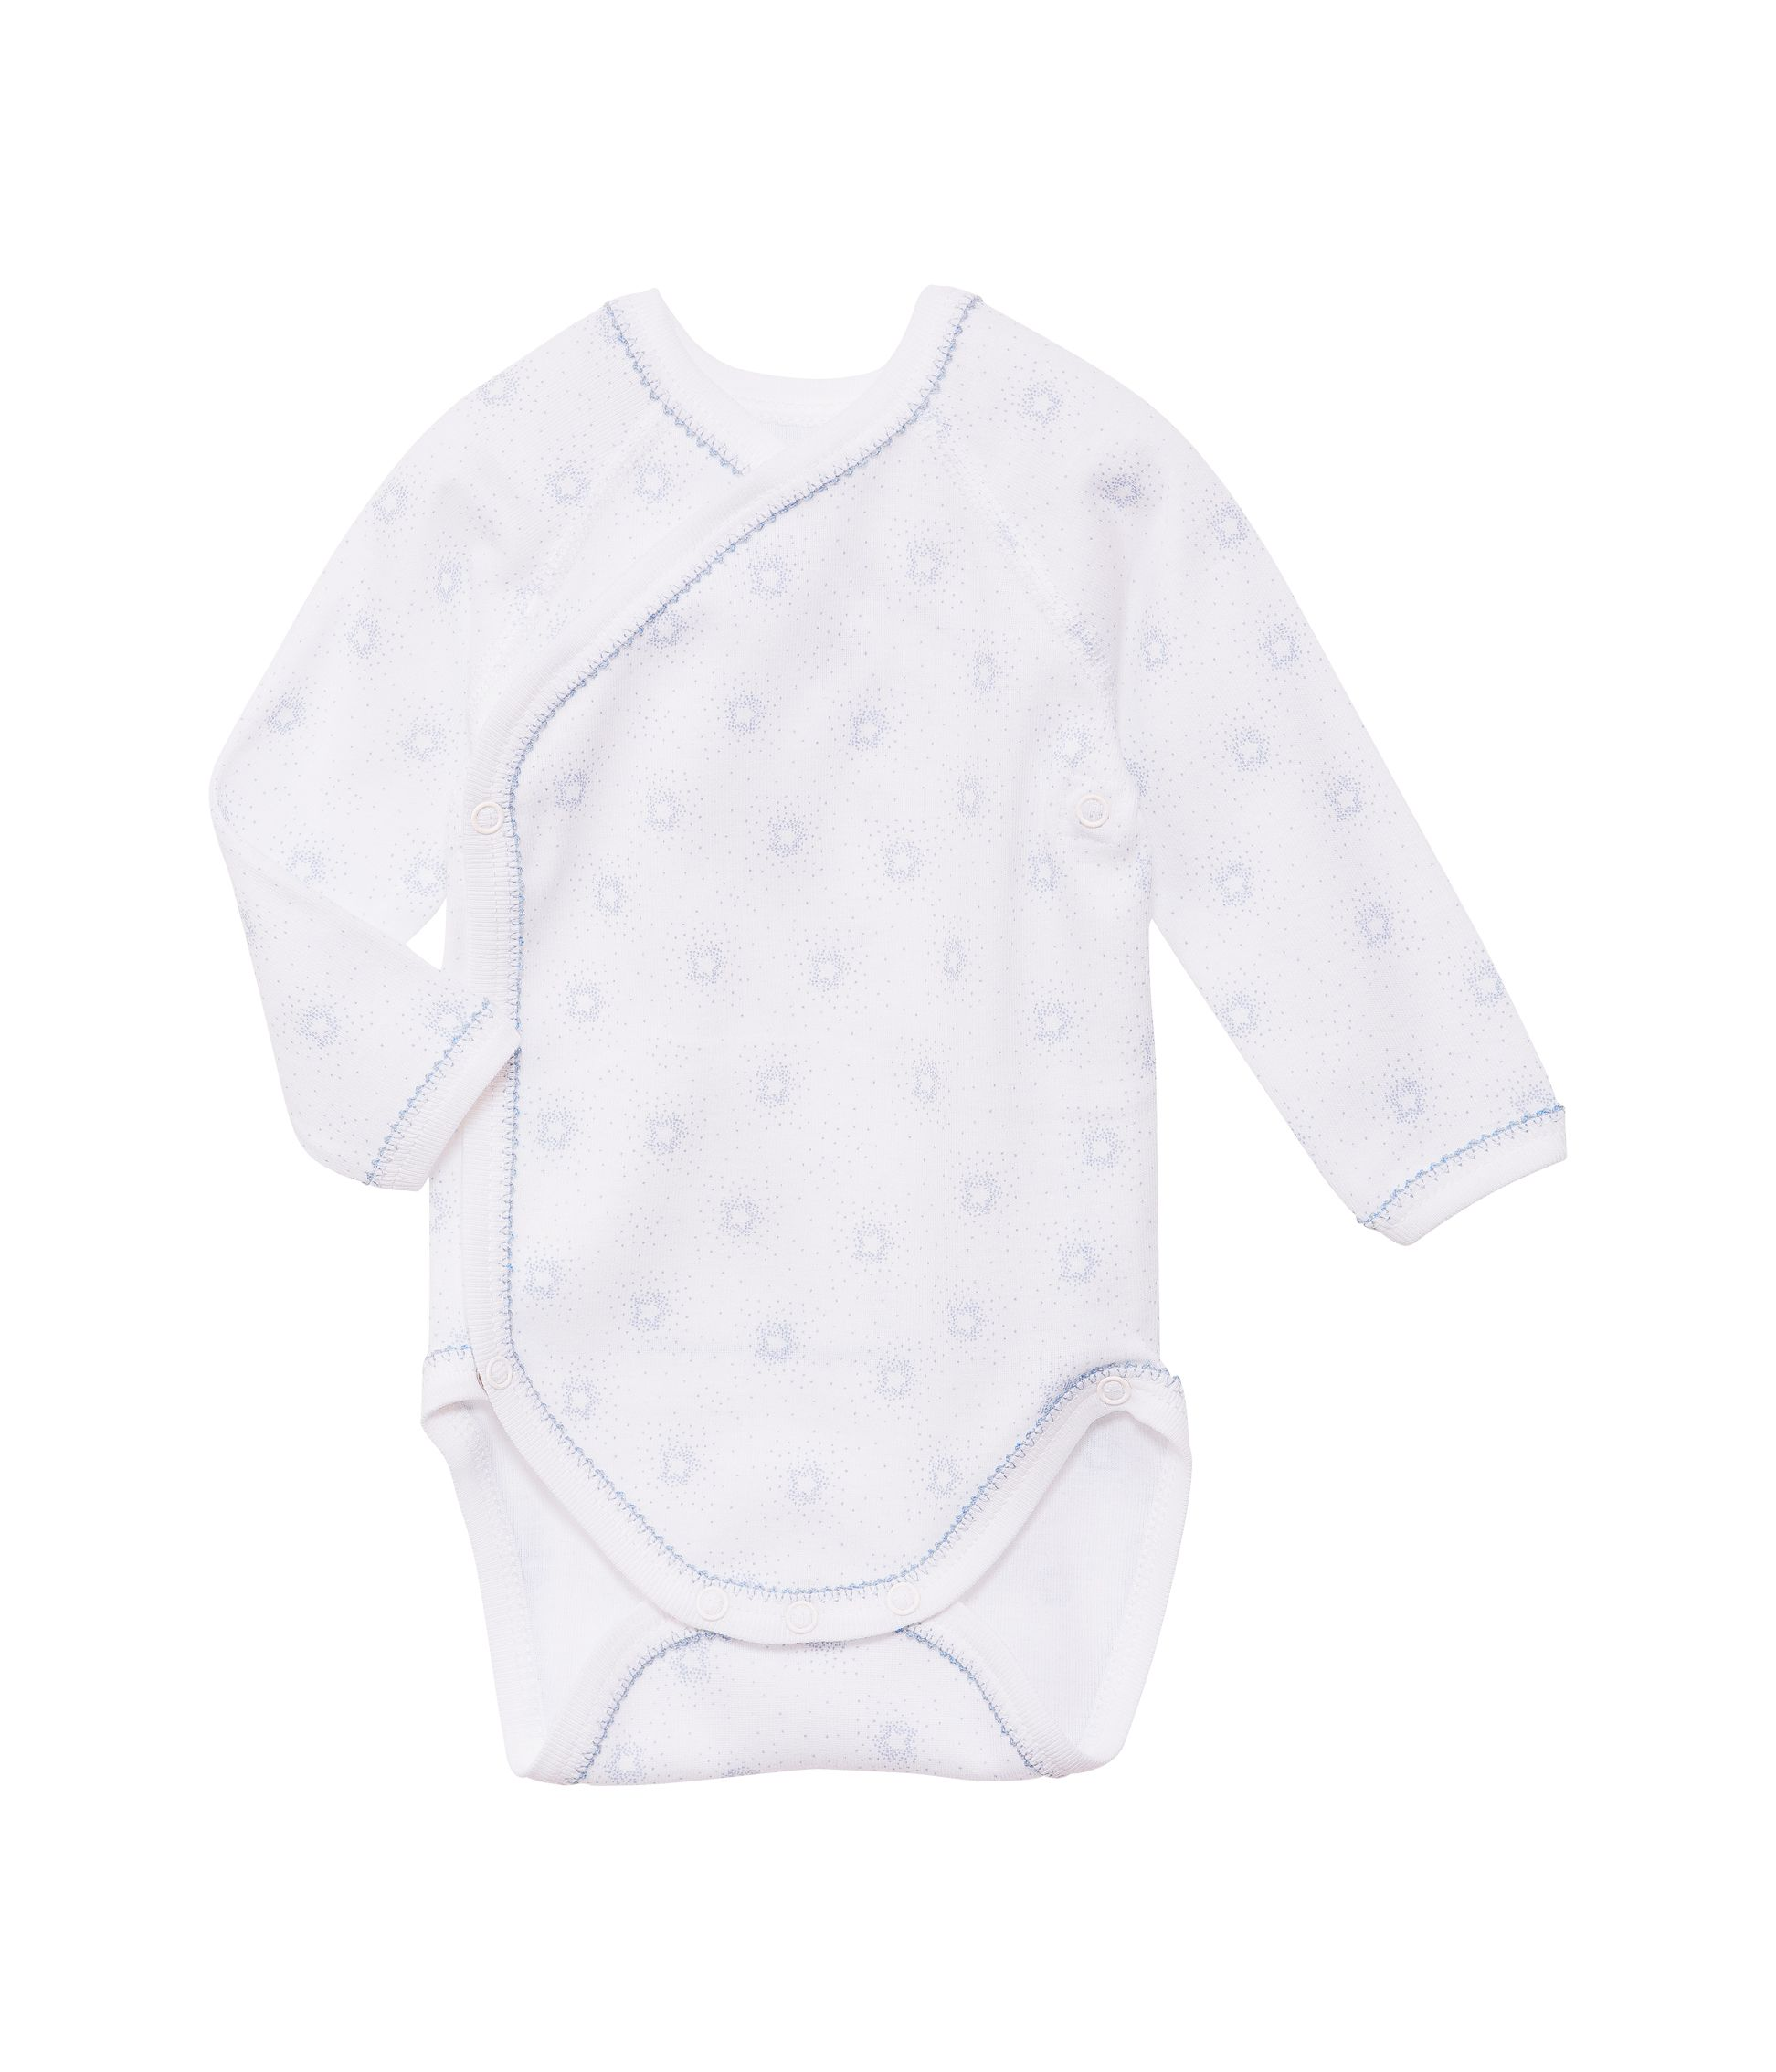 Baby boys long sleeve bodysuit